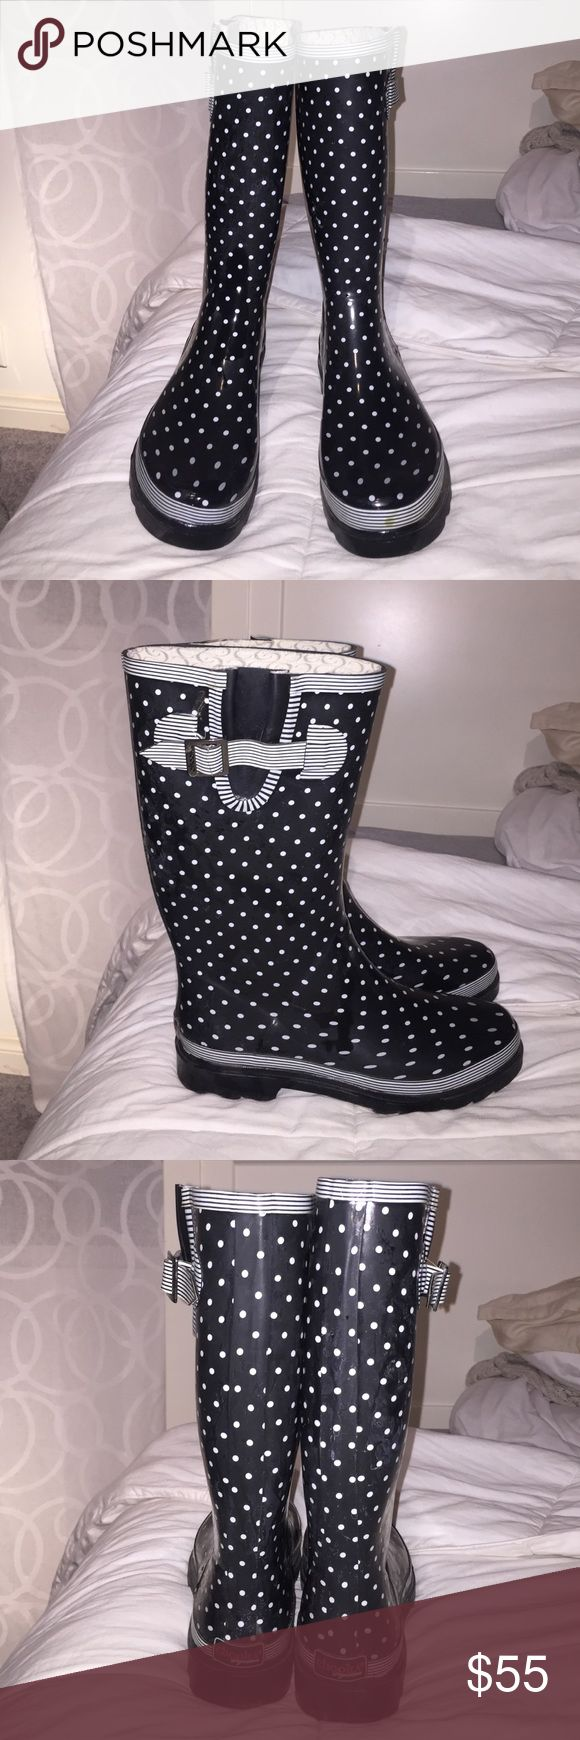 Chooka Rainboots ☔️ Too Solid Rain Boot - Polka Dot Black and White. Small stain on front left toe (shown in picture). We are not getting much rain out here in Cali so someone else please put these to use :) Chooka Boot Shoes Winter & Rain Boots